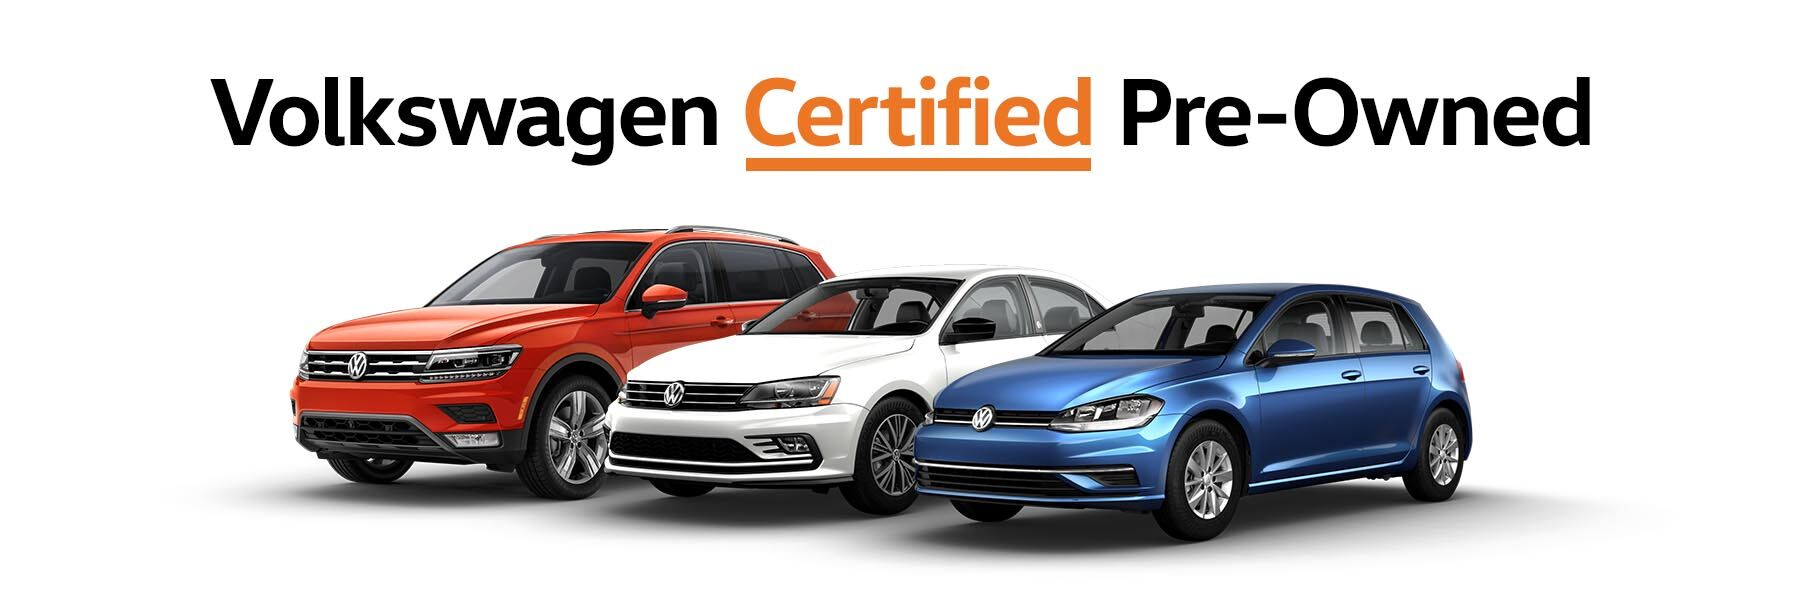 Volkswagen Certified Pre-Owned in Clovis, CA